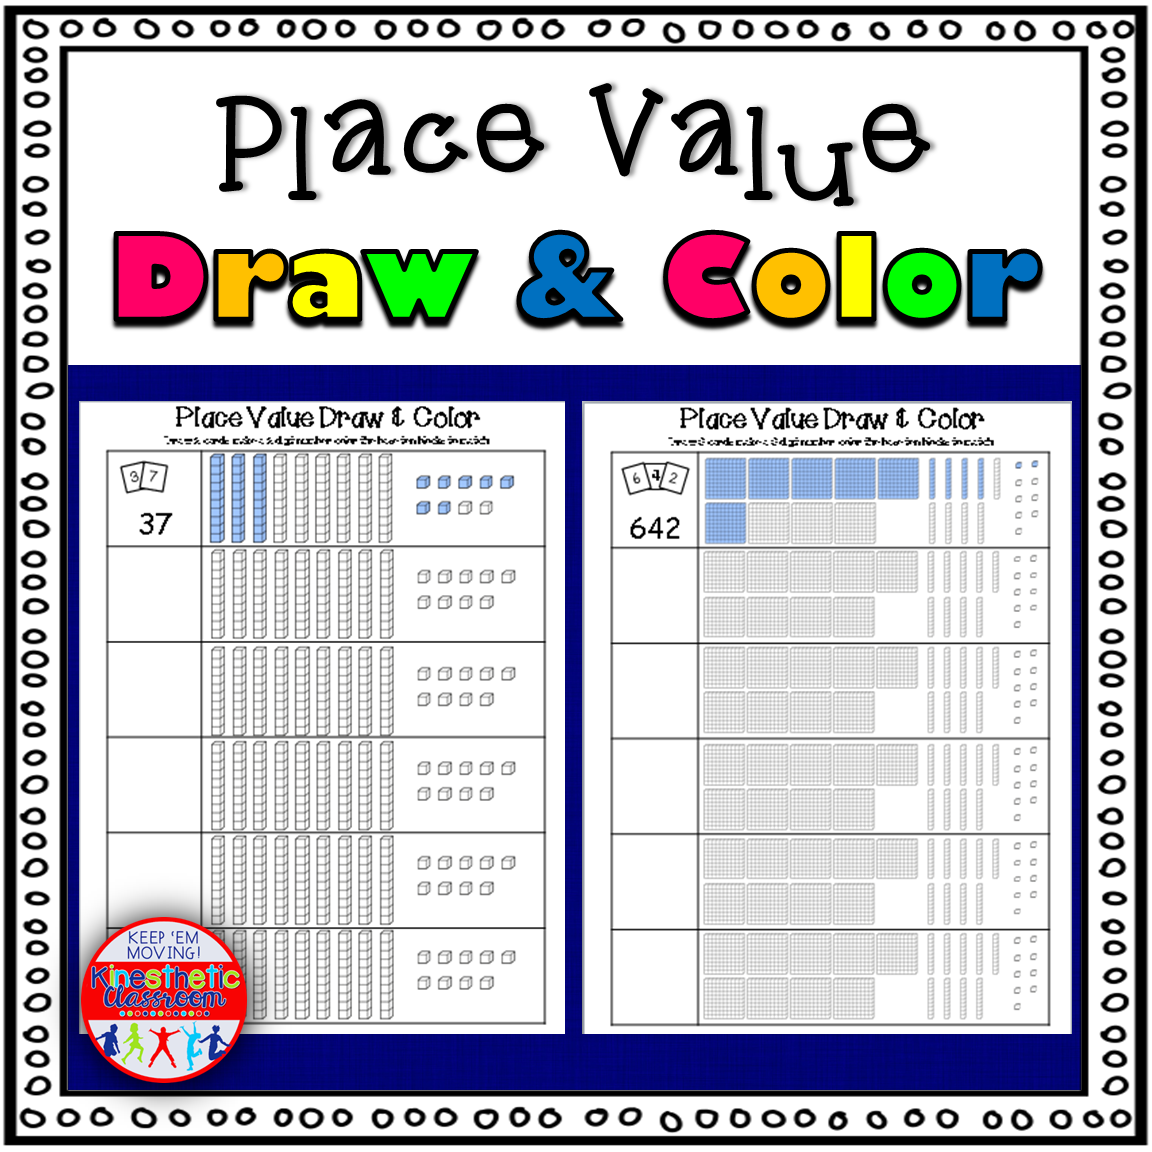 Place Value Draw and Color Worksheets